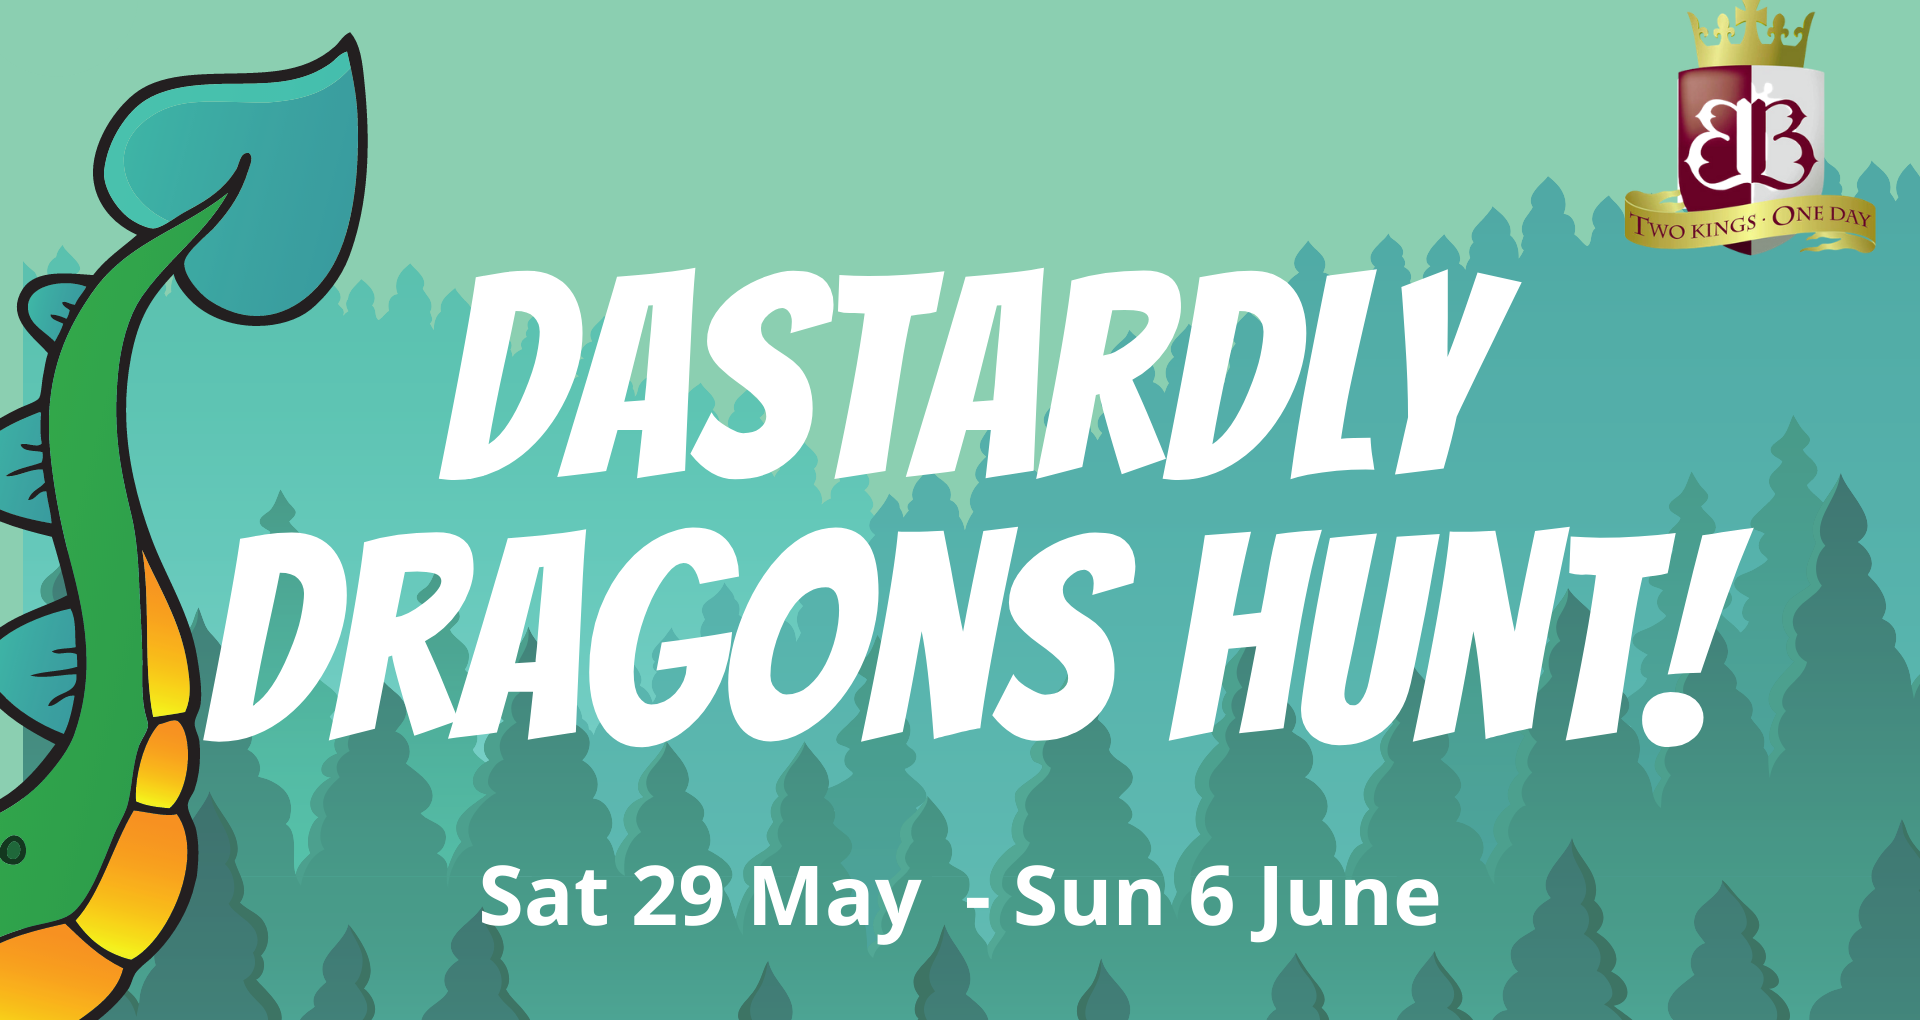 Dastardly Dragons Hunt